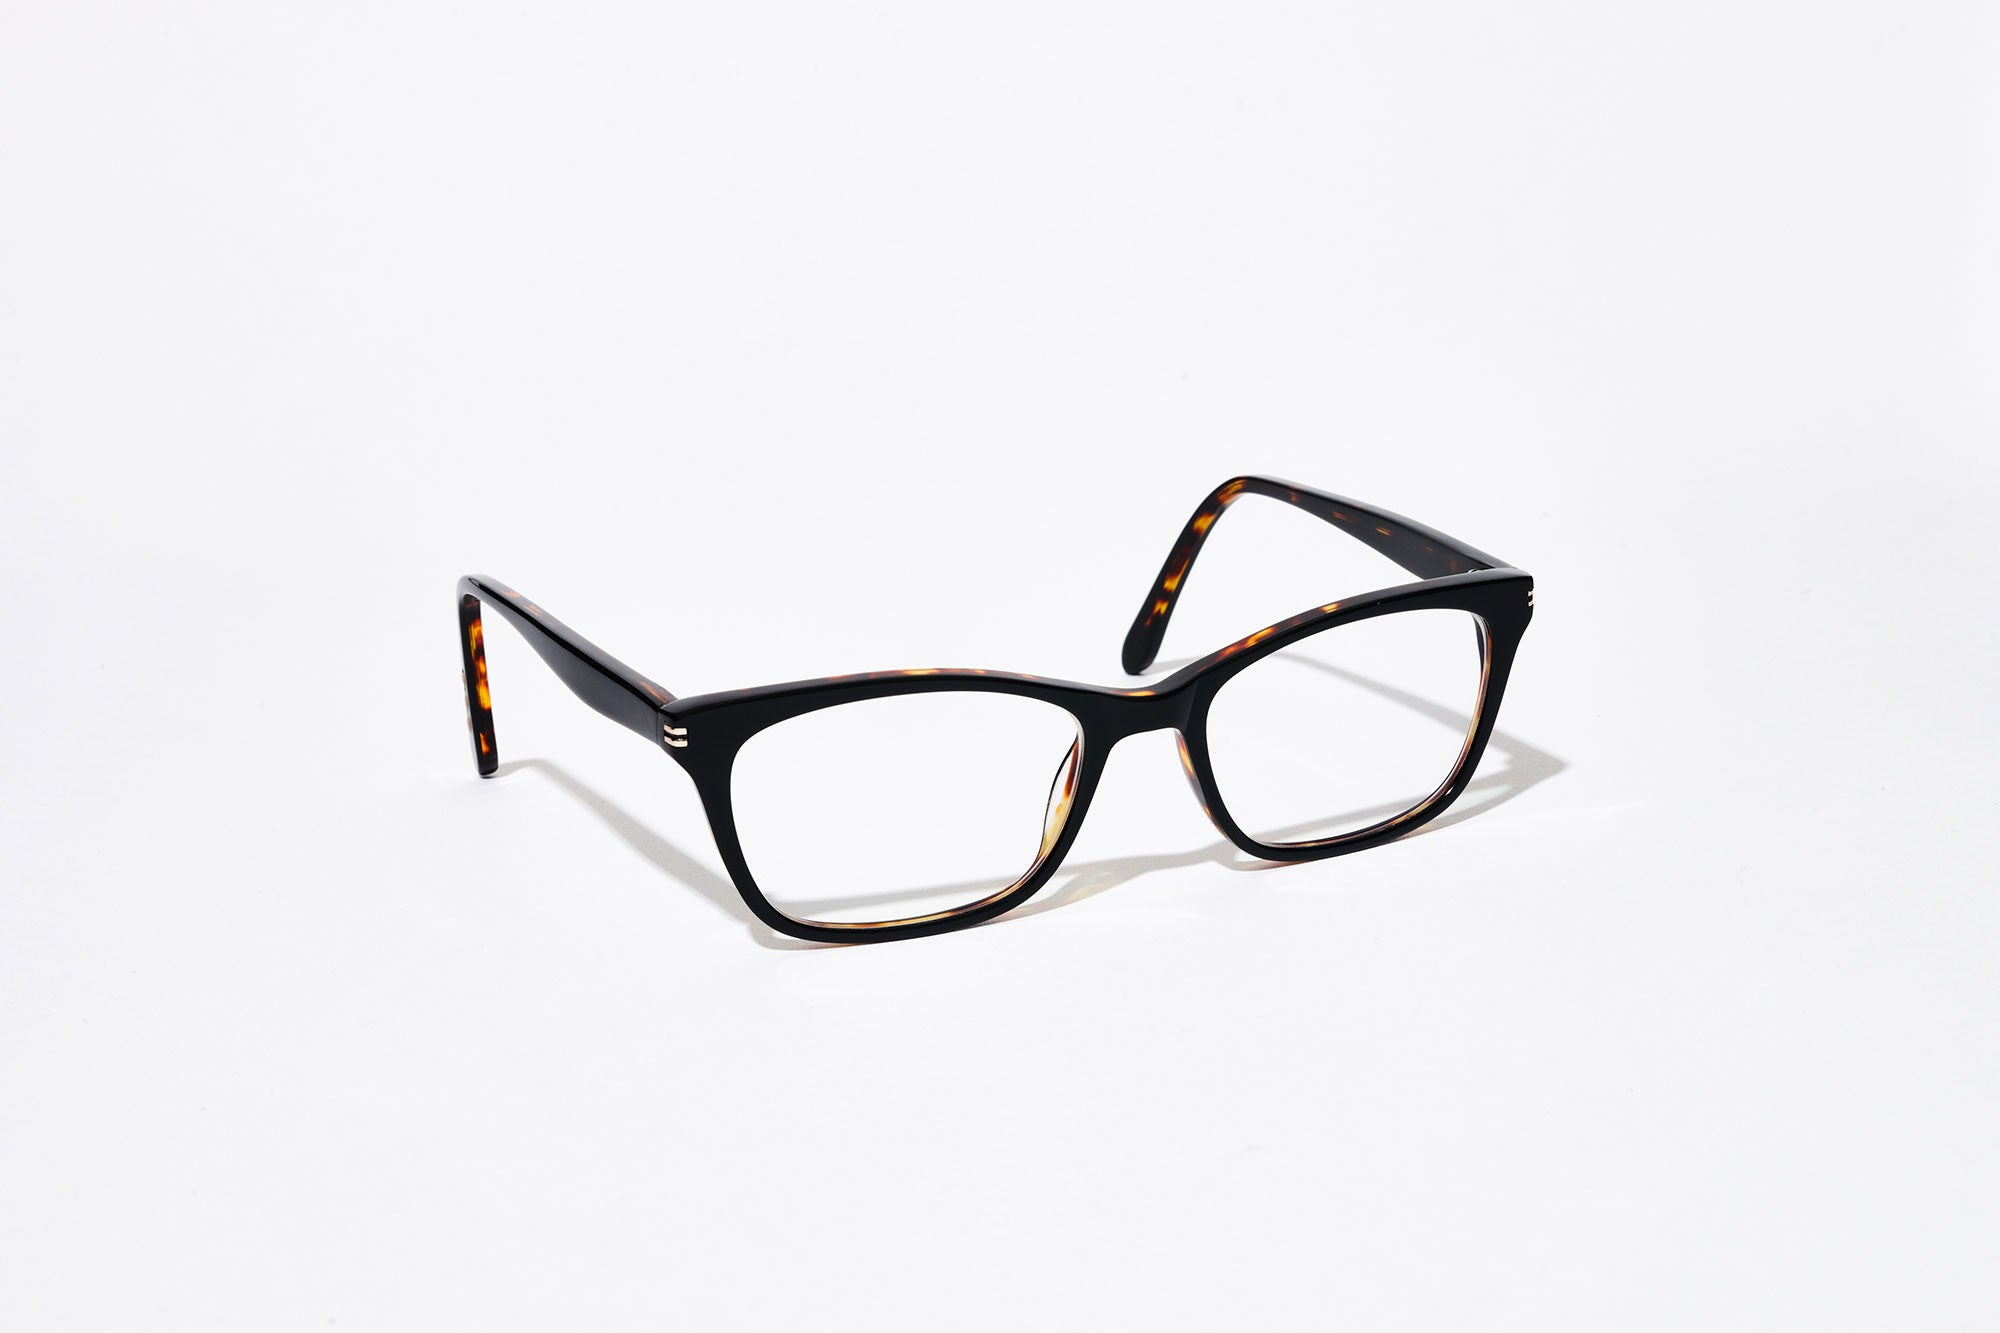 Darker Optical Eyewear Frame | Debauch London